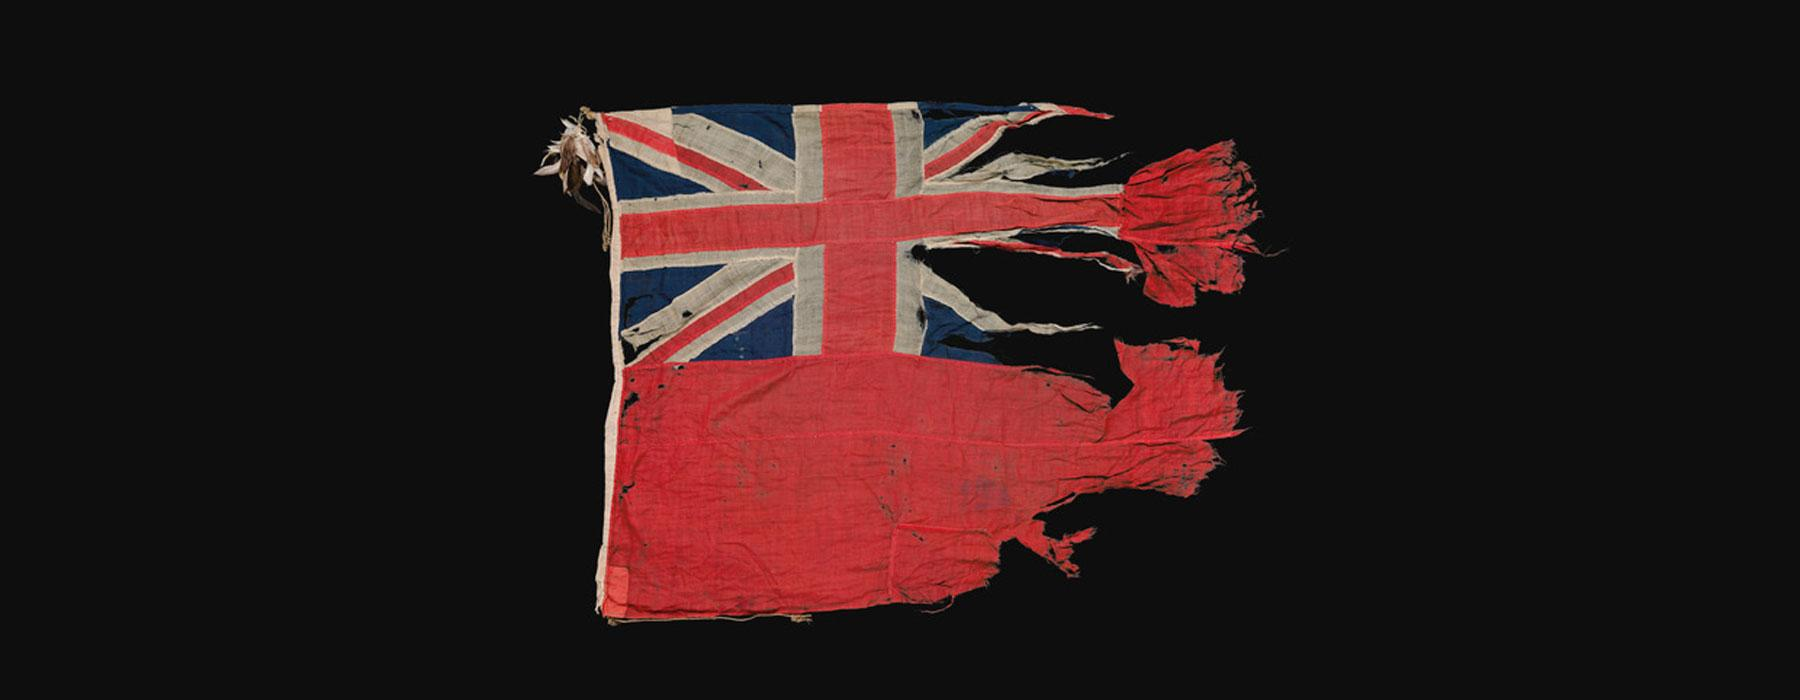 A torn red flag with a Union Jack on it